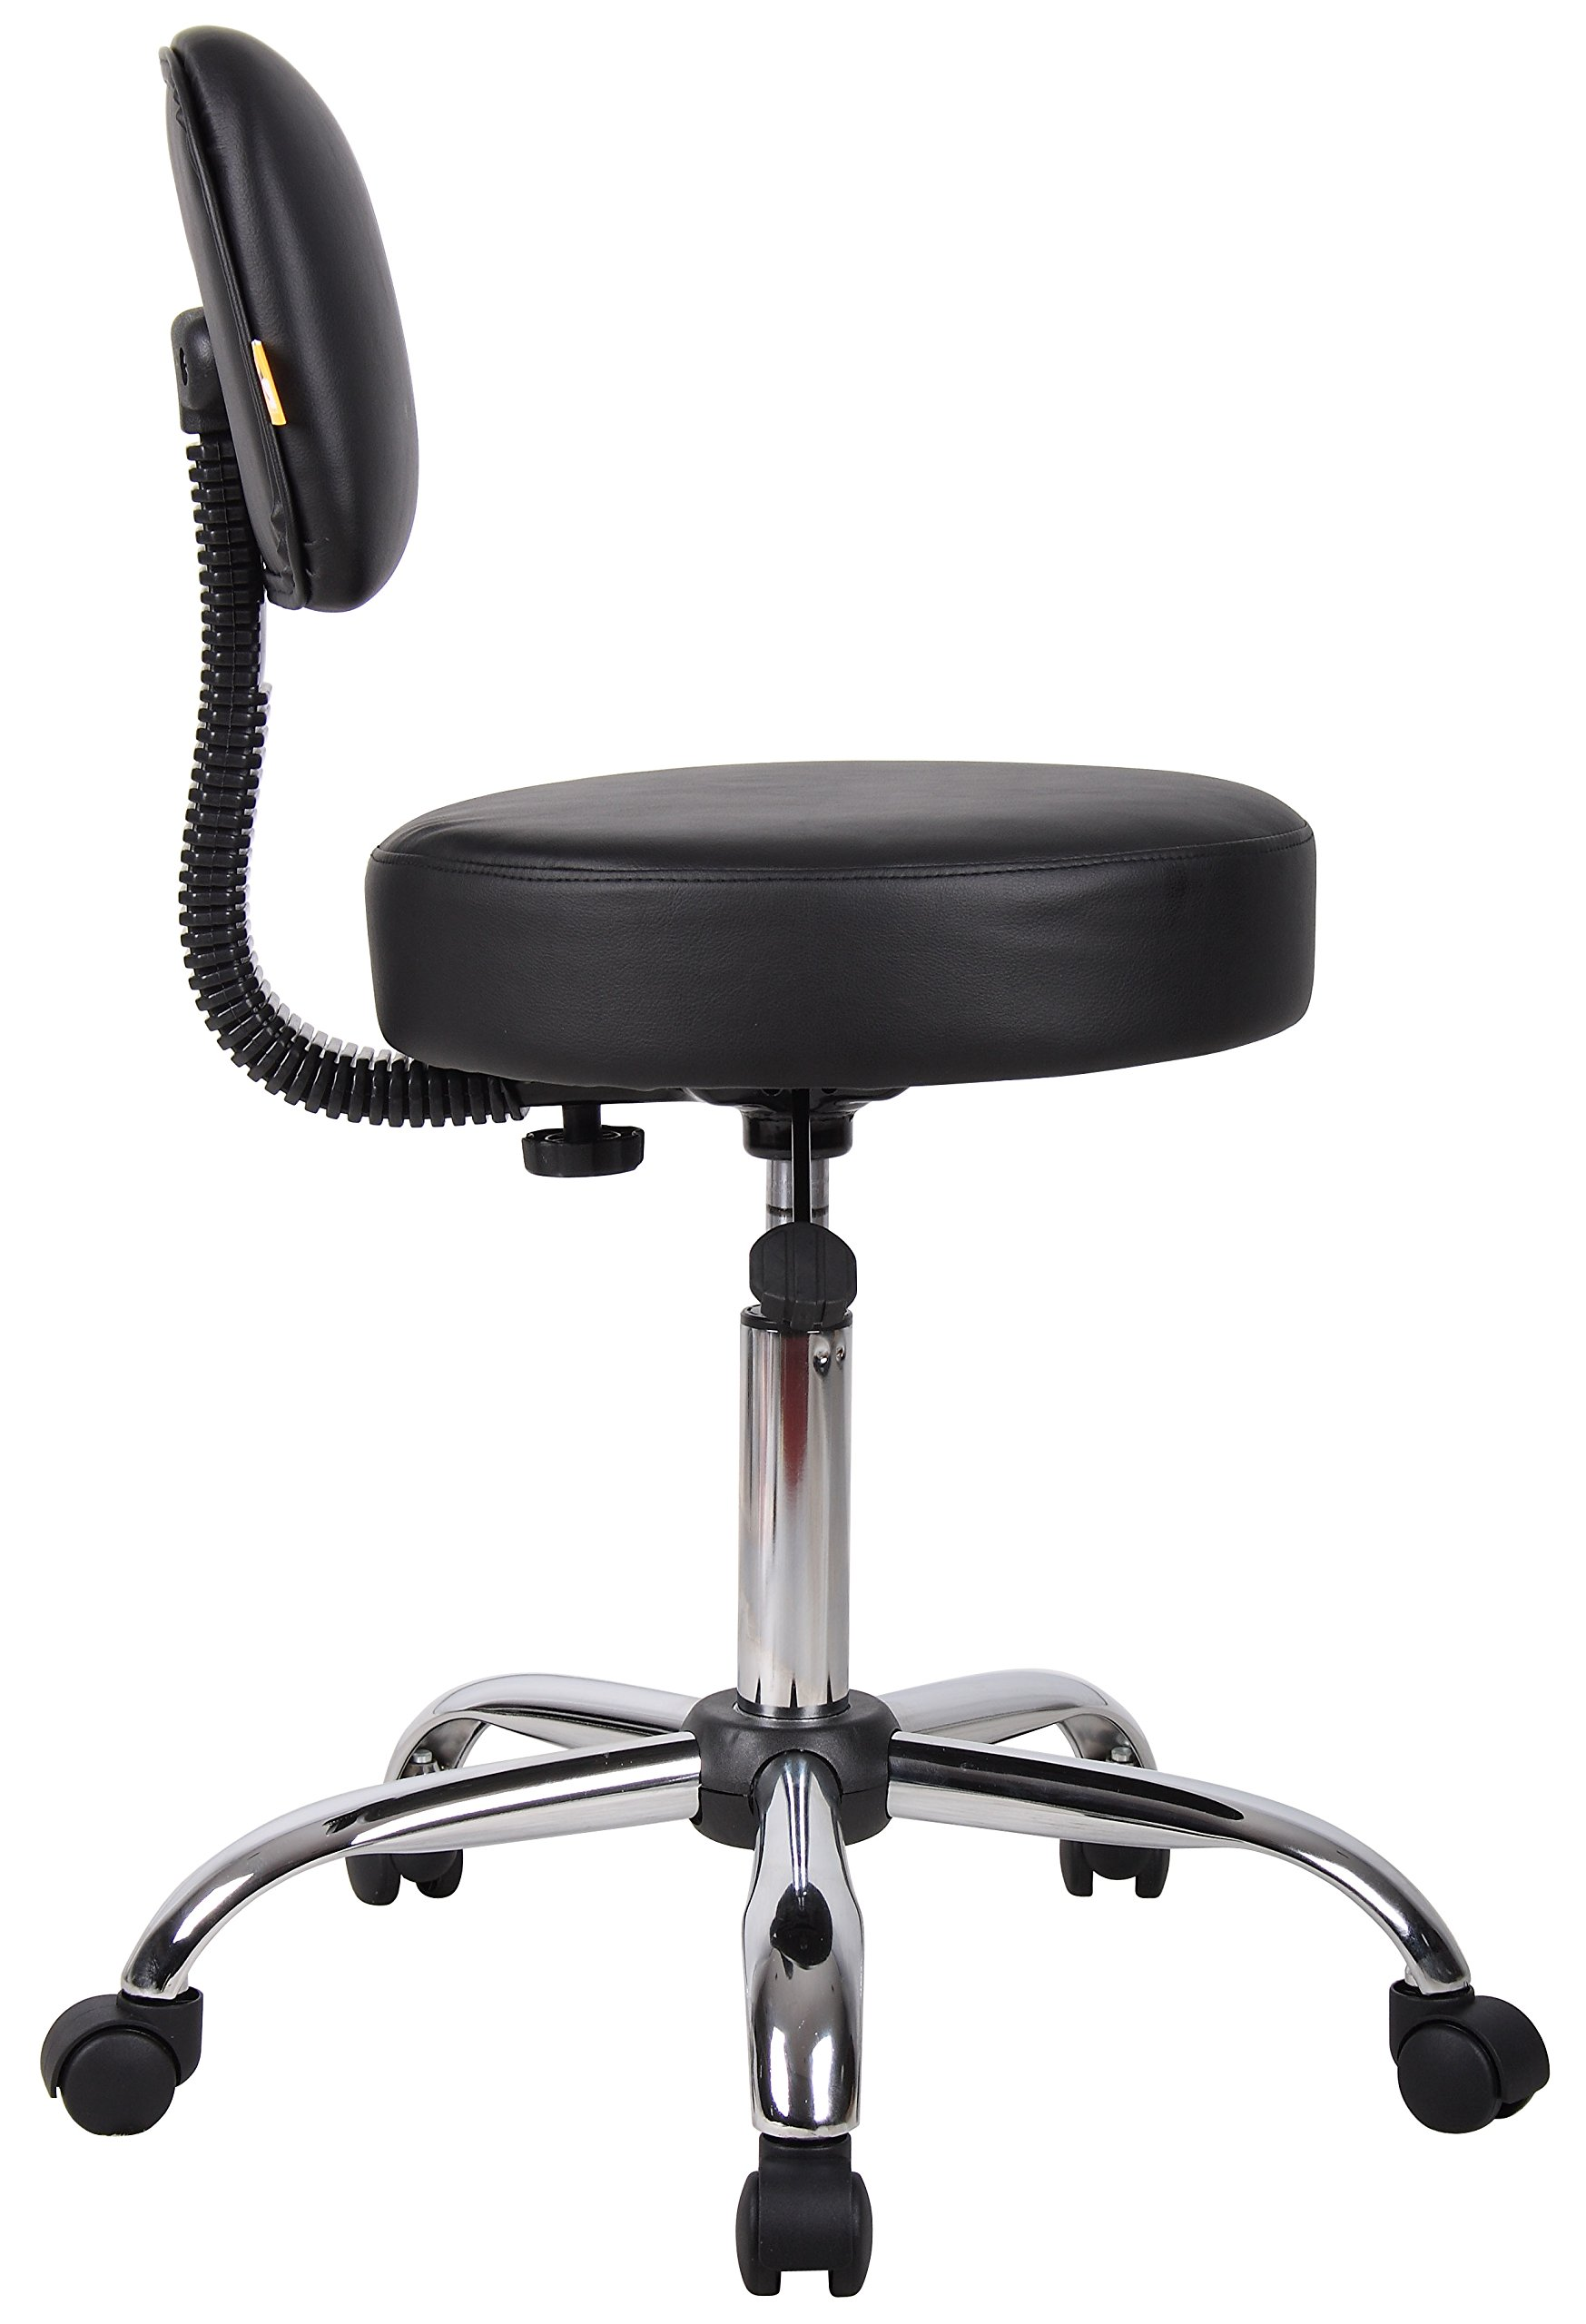 Boss Office Products B245-BK Be Well Medical Spa Stool with Back in Black by Boss Office Products (Image #6)